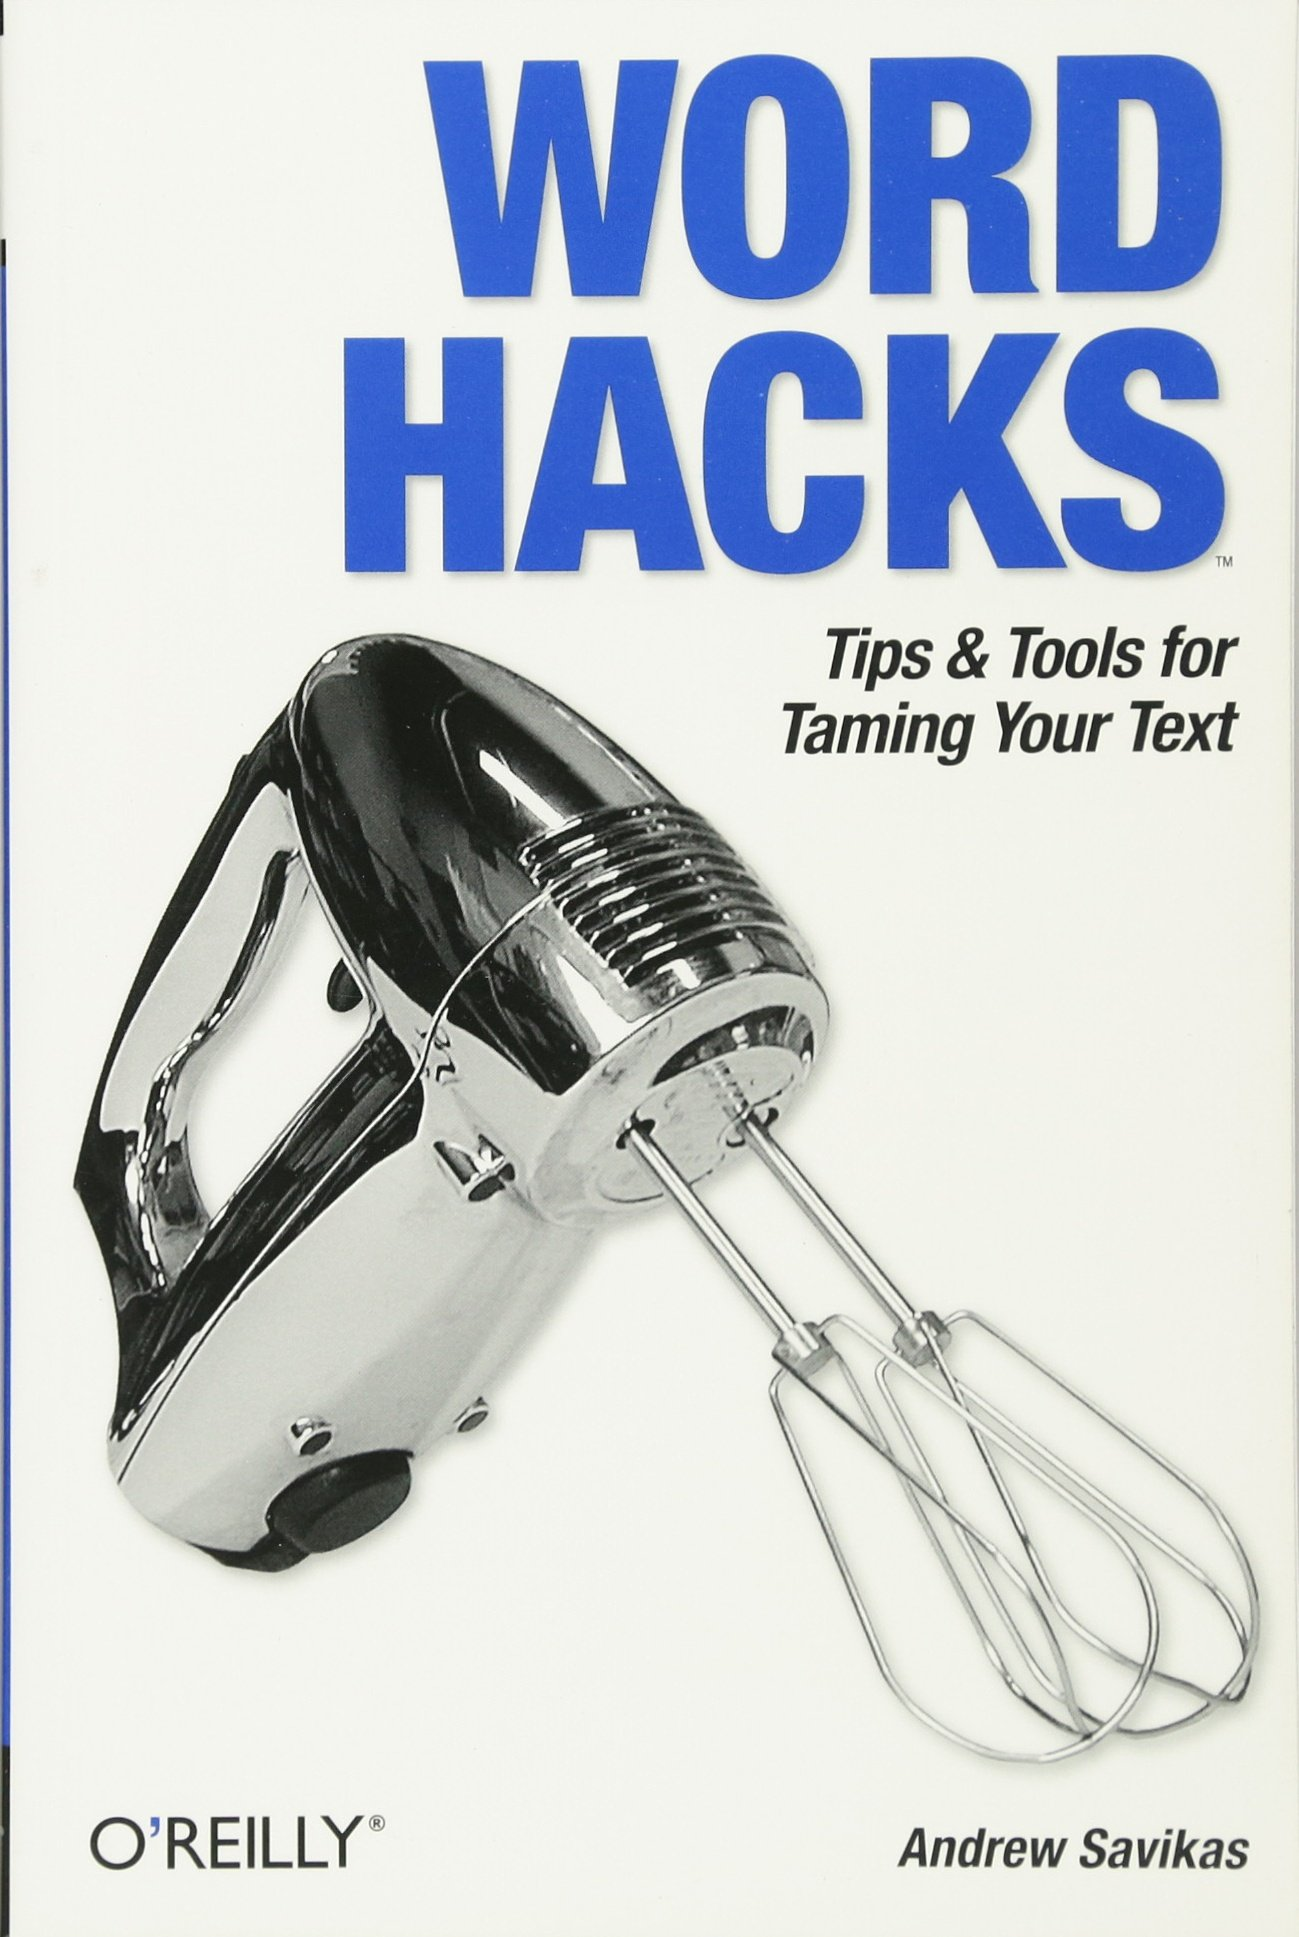 Word Hacks: Tips & Tools for Taming Your Text: Andrew Savikas:  9780596004934: Books - Amazon.ca